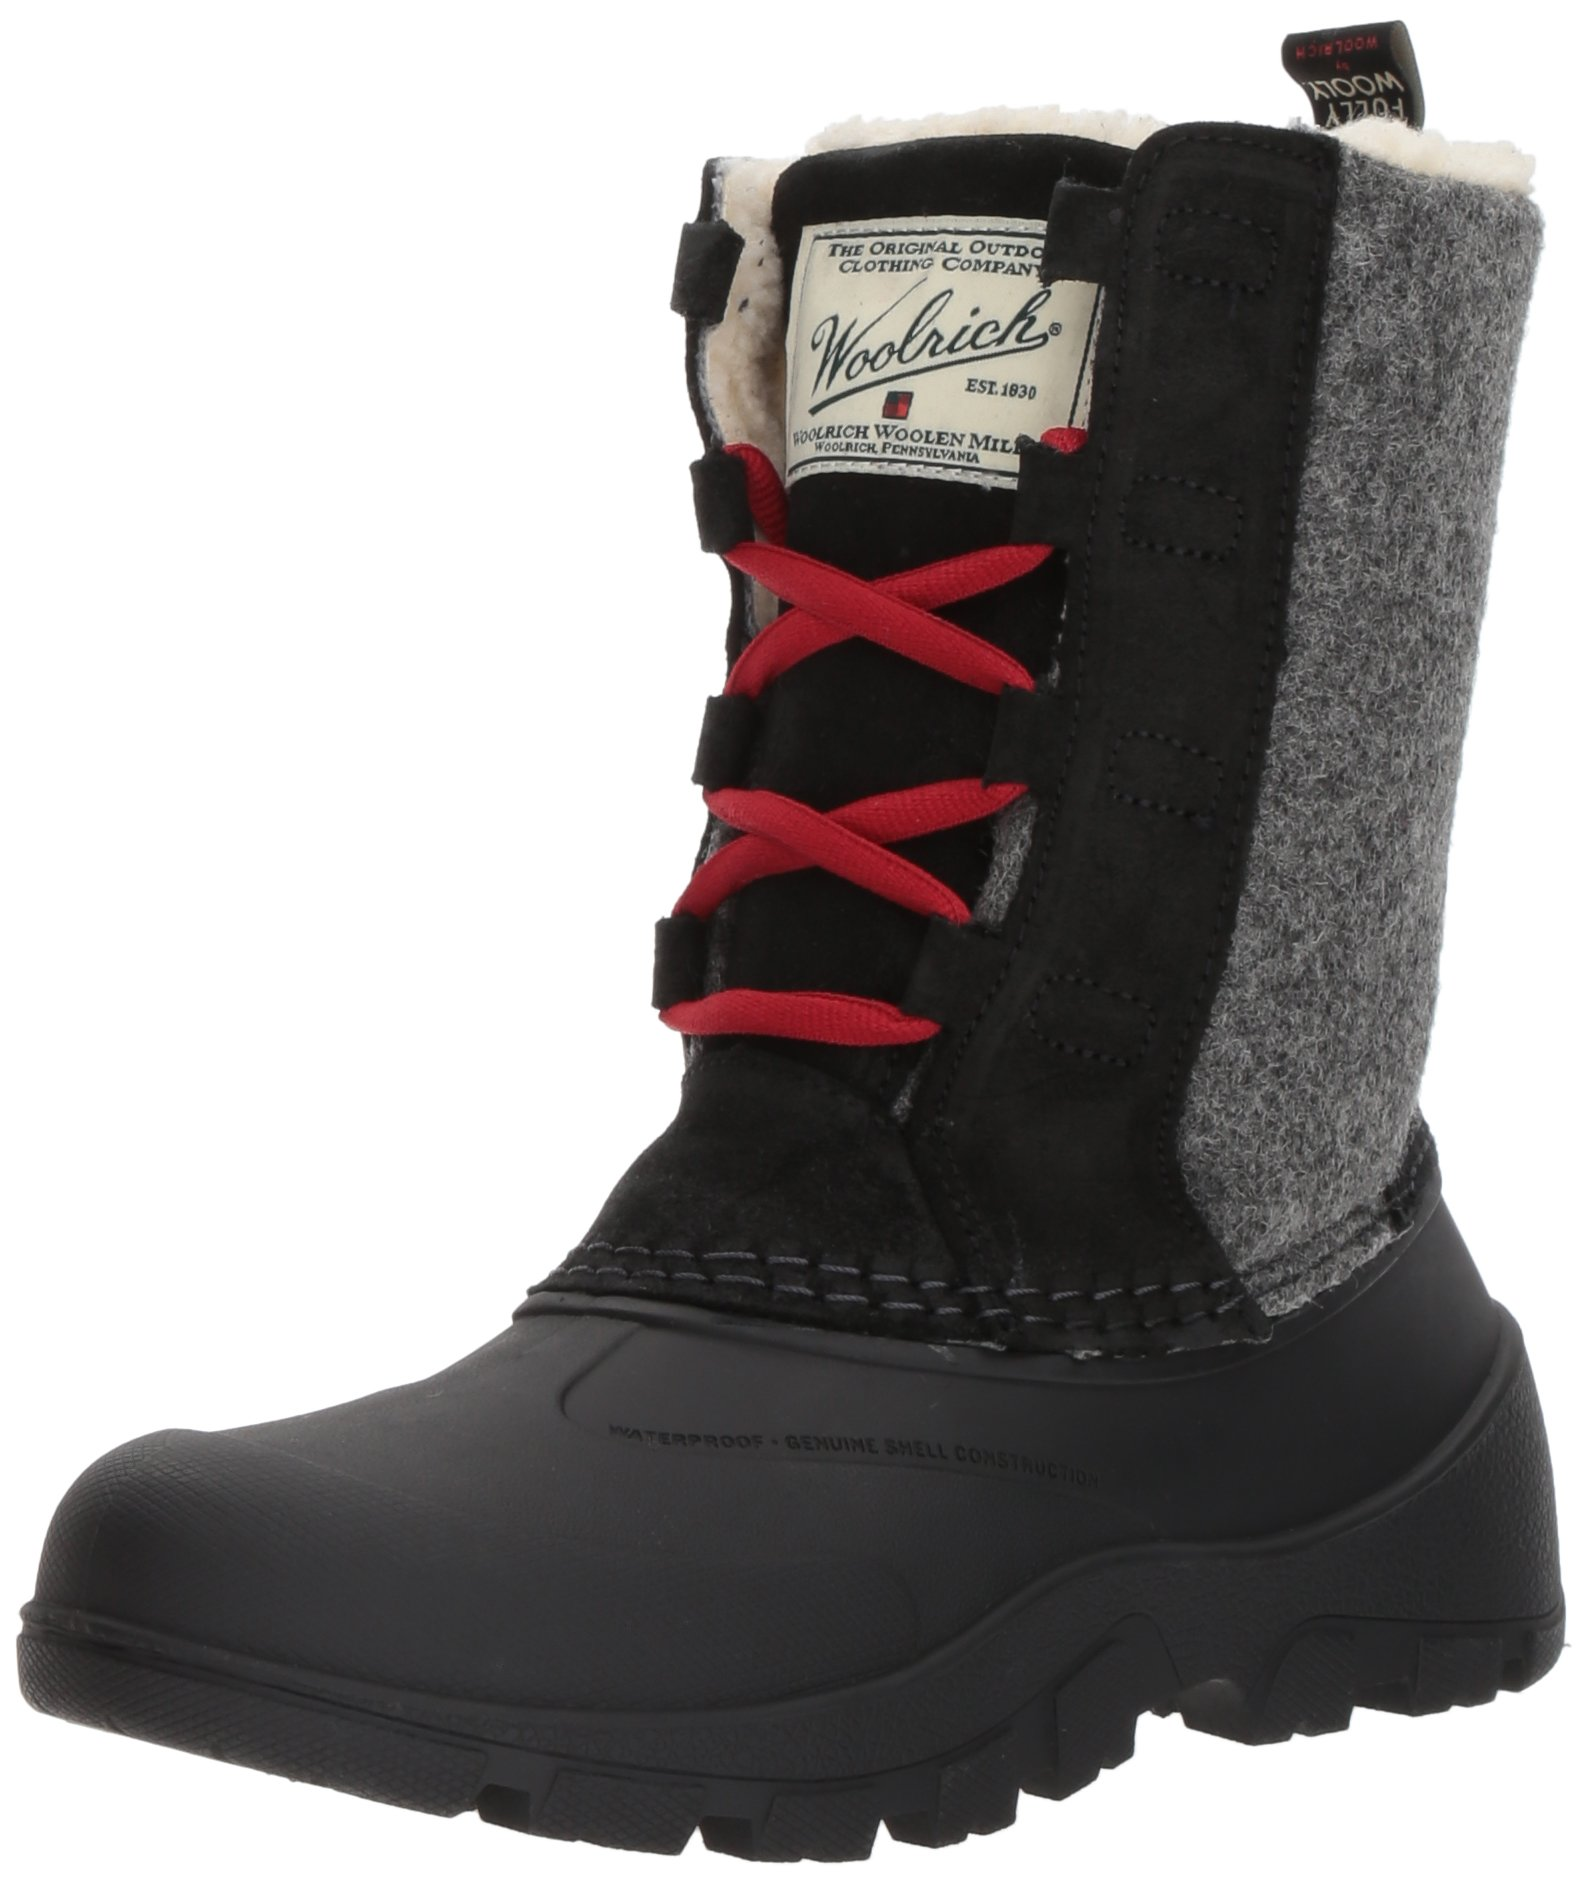 Woolrich Women's Fw Tundracat Snow Boot, Black, 10 M US